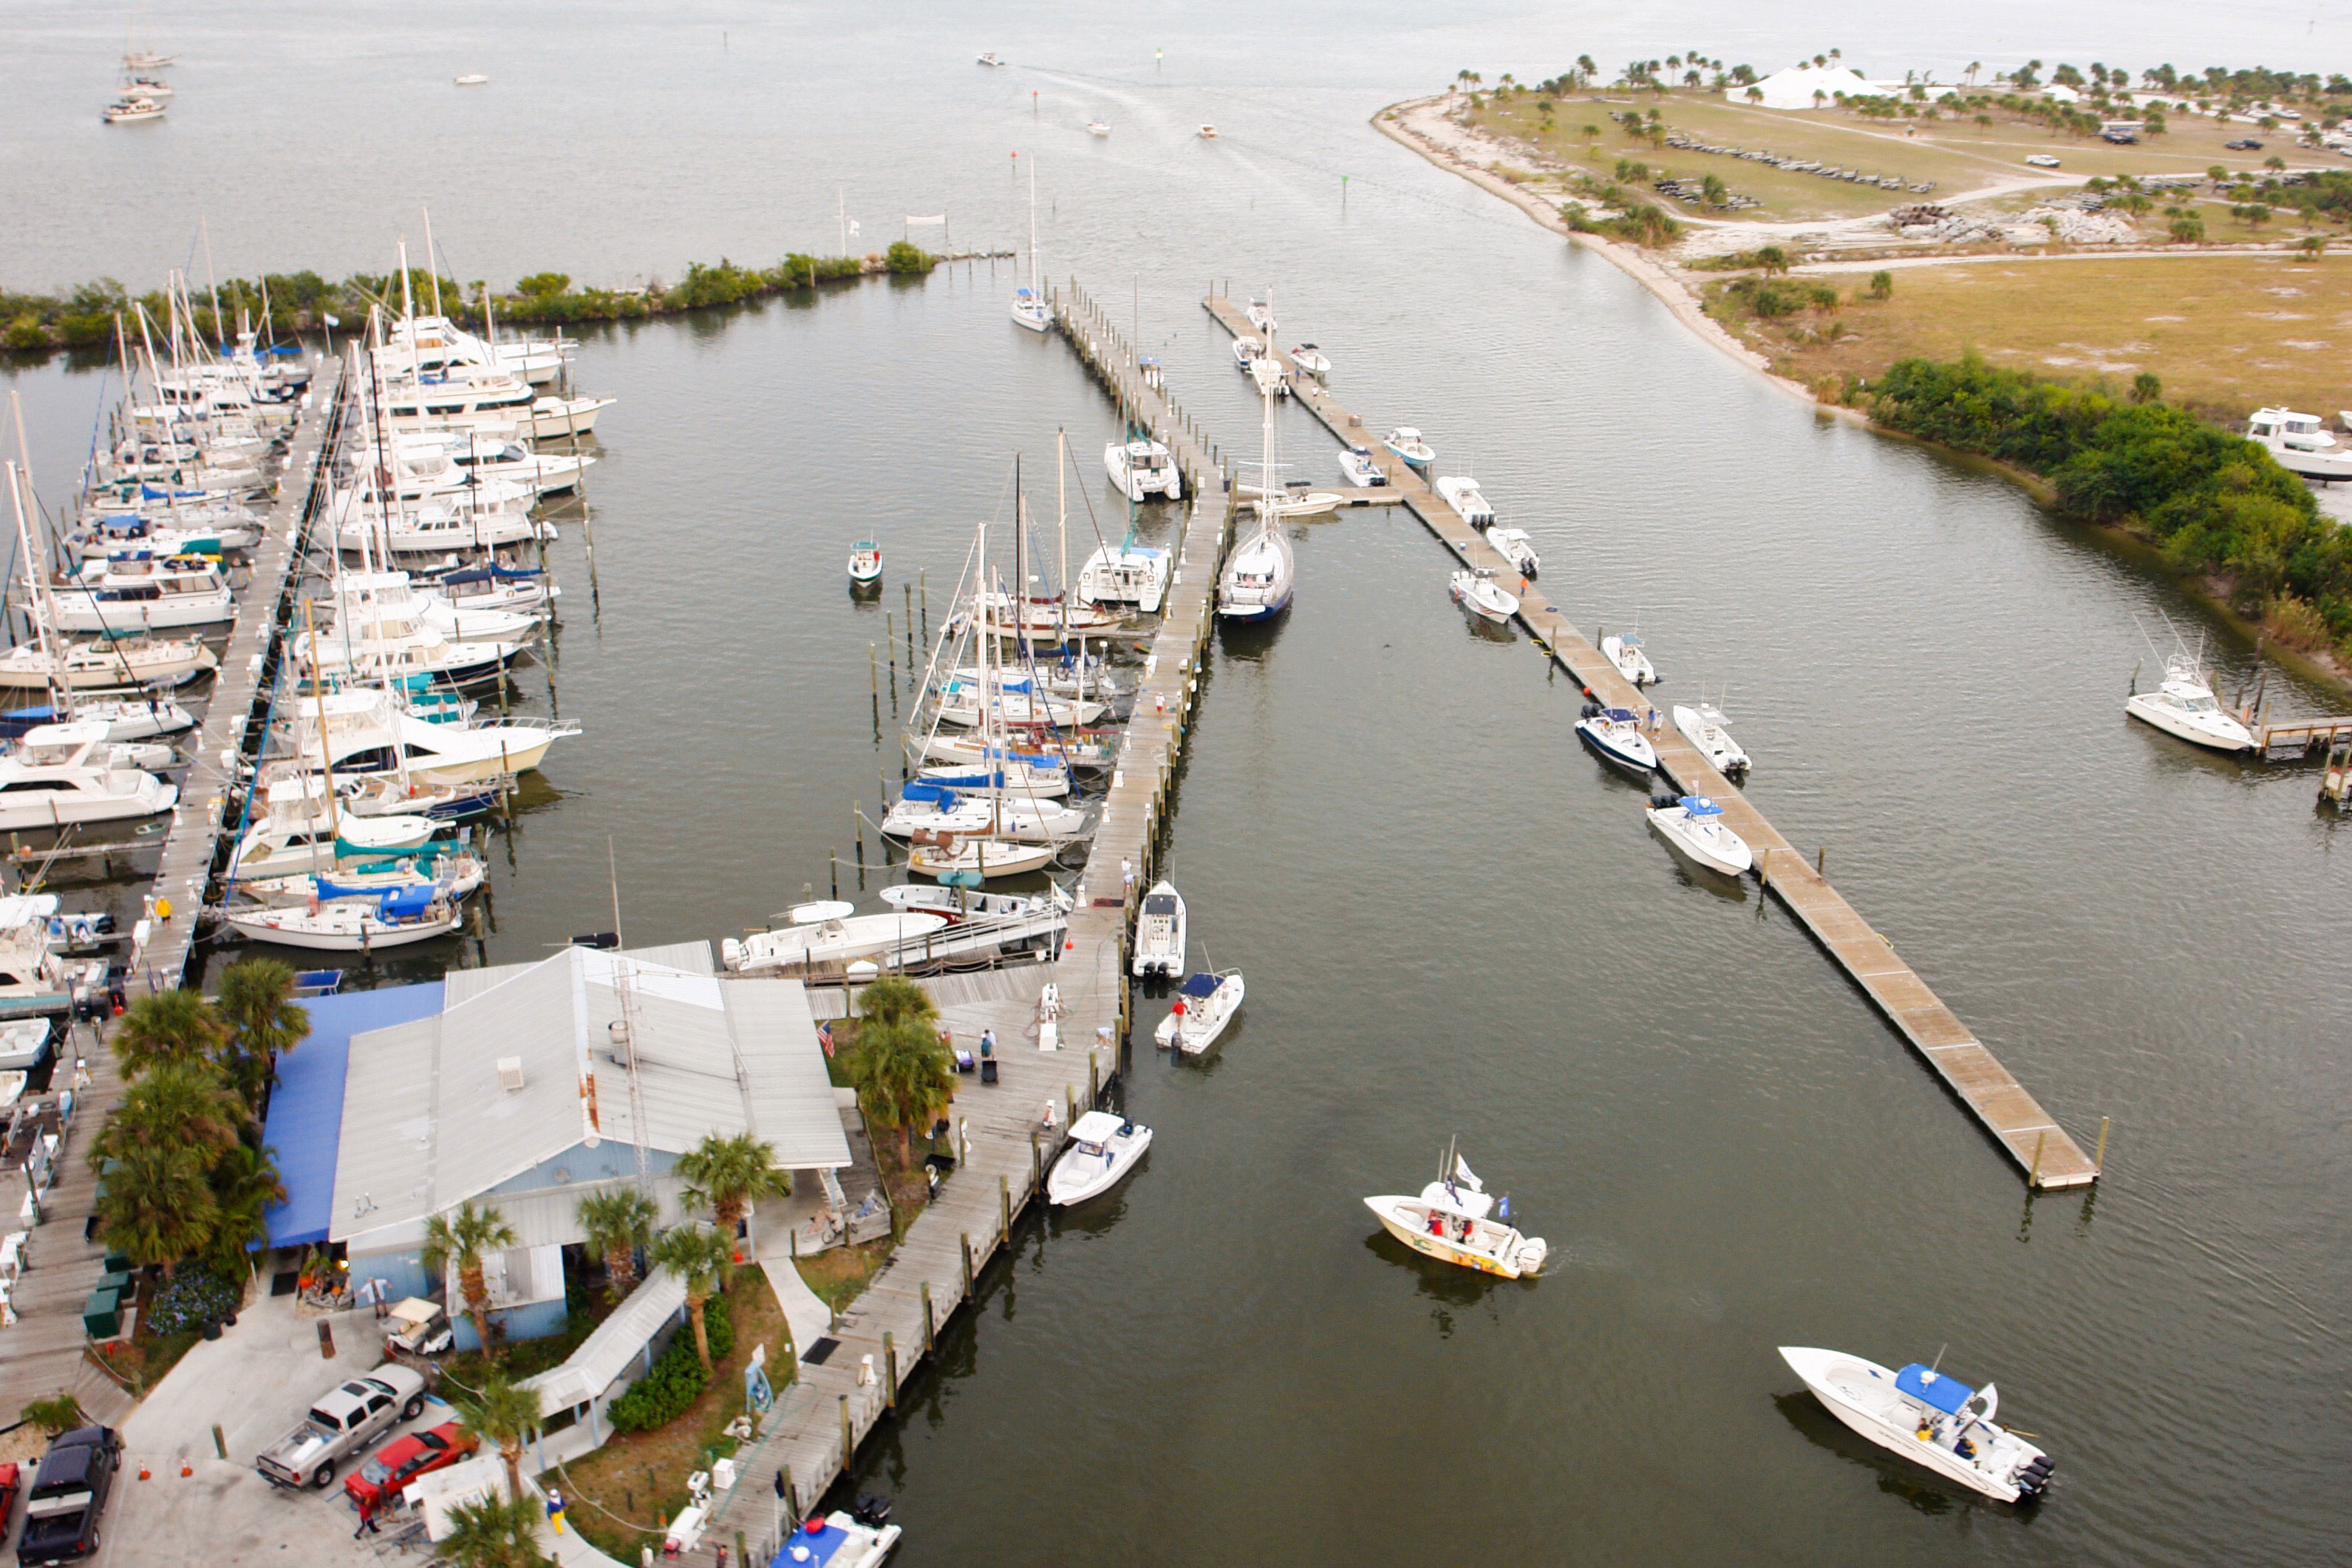 SKA Fishing Tournament Floating Docks - Aerial shot towards the water - Allsports Productions